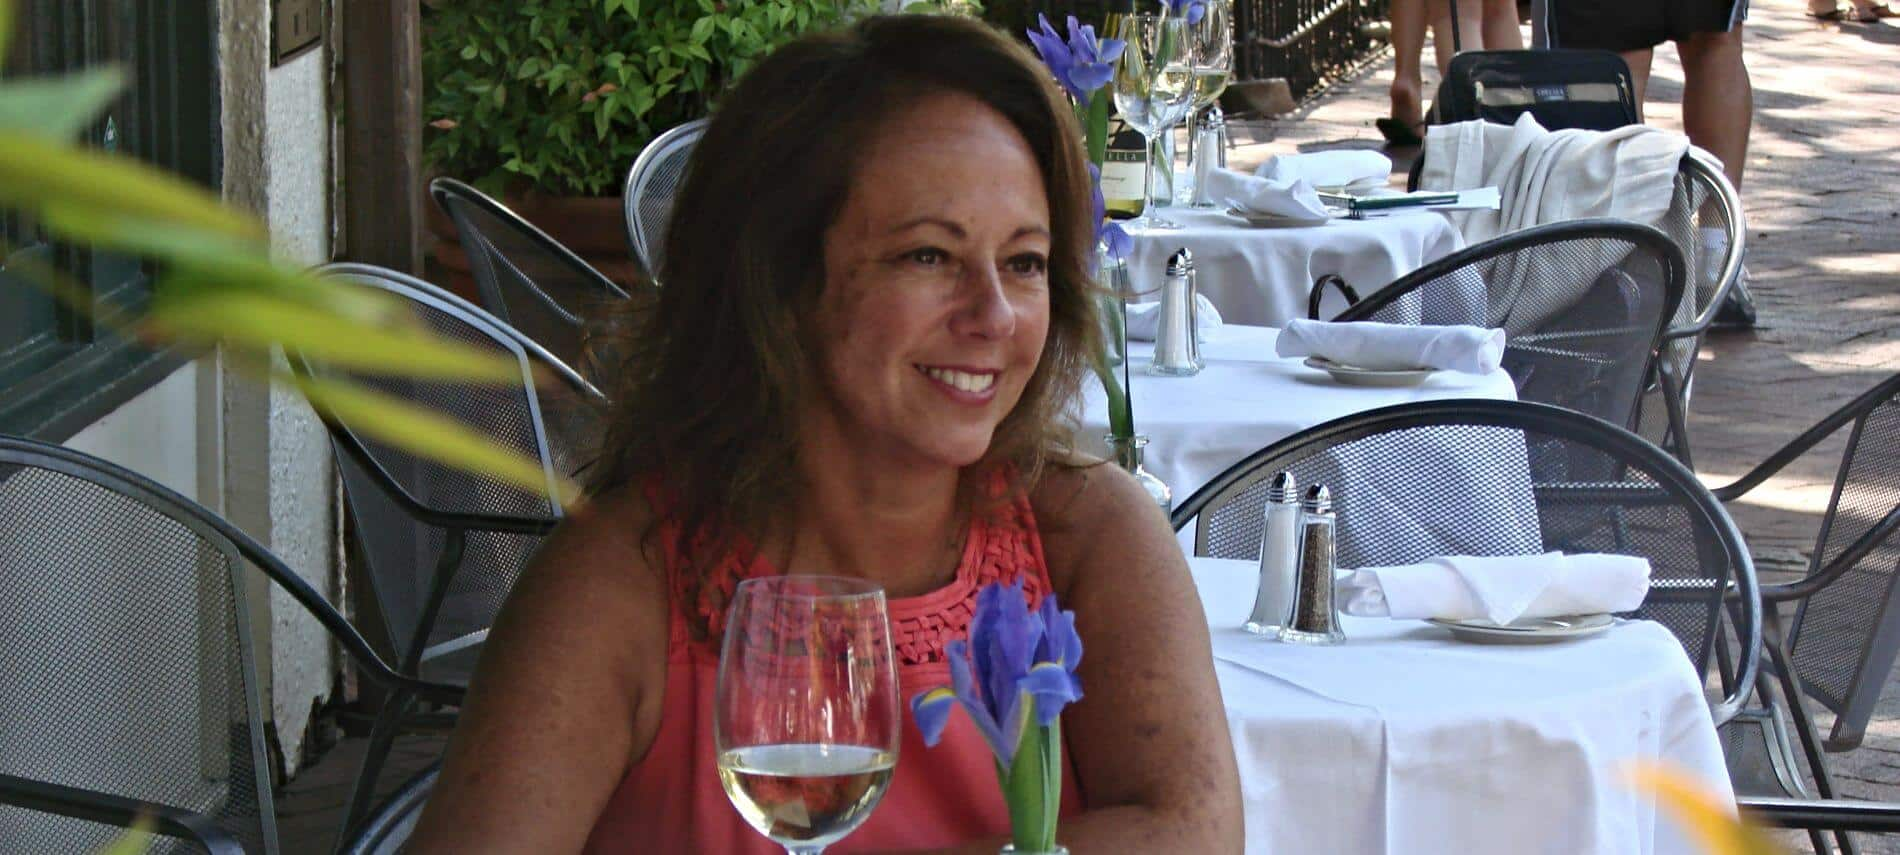 Smiling woman sitting at table outside with a glass of white wine